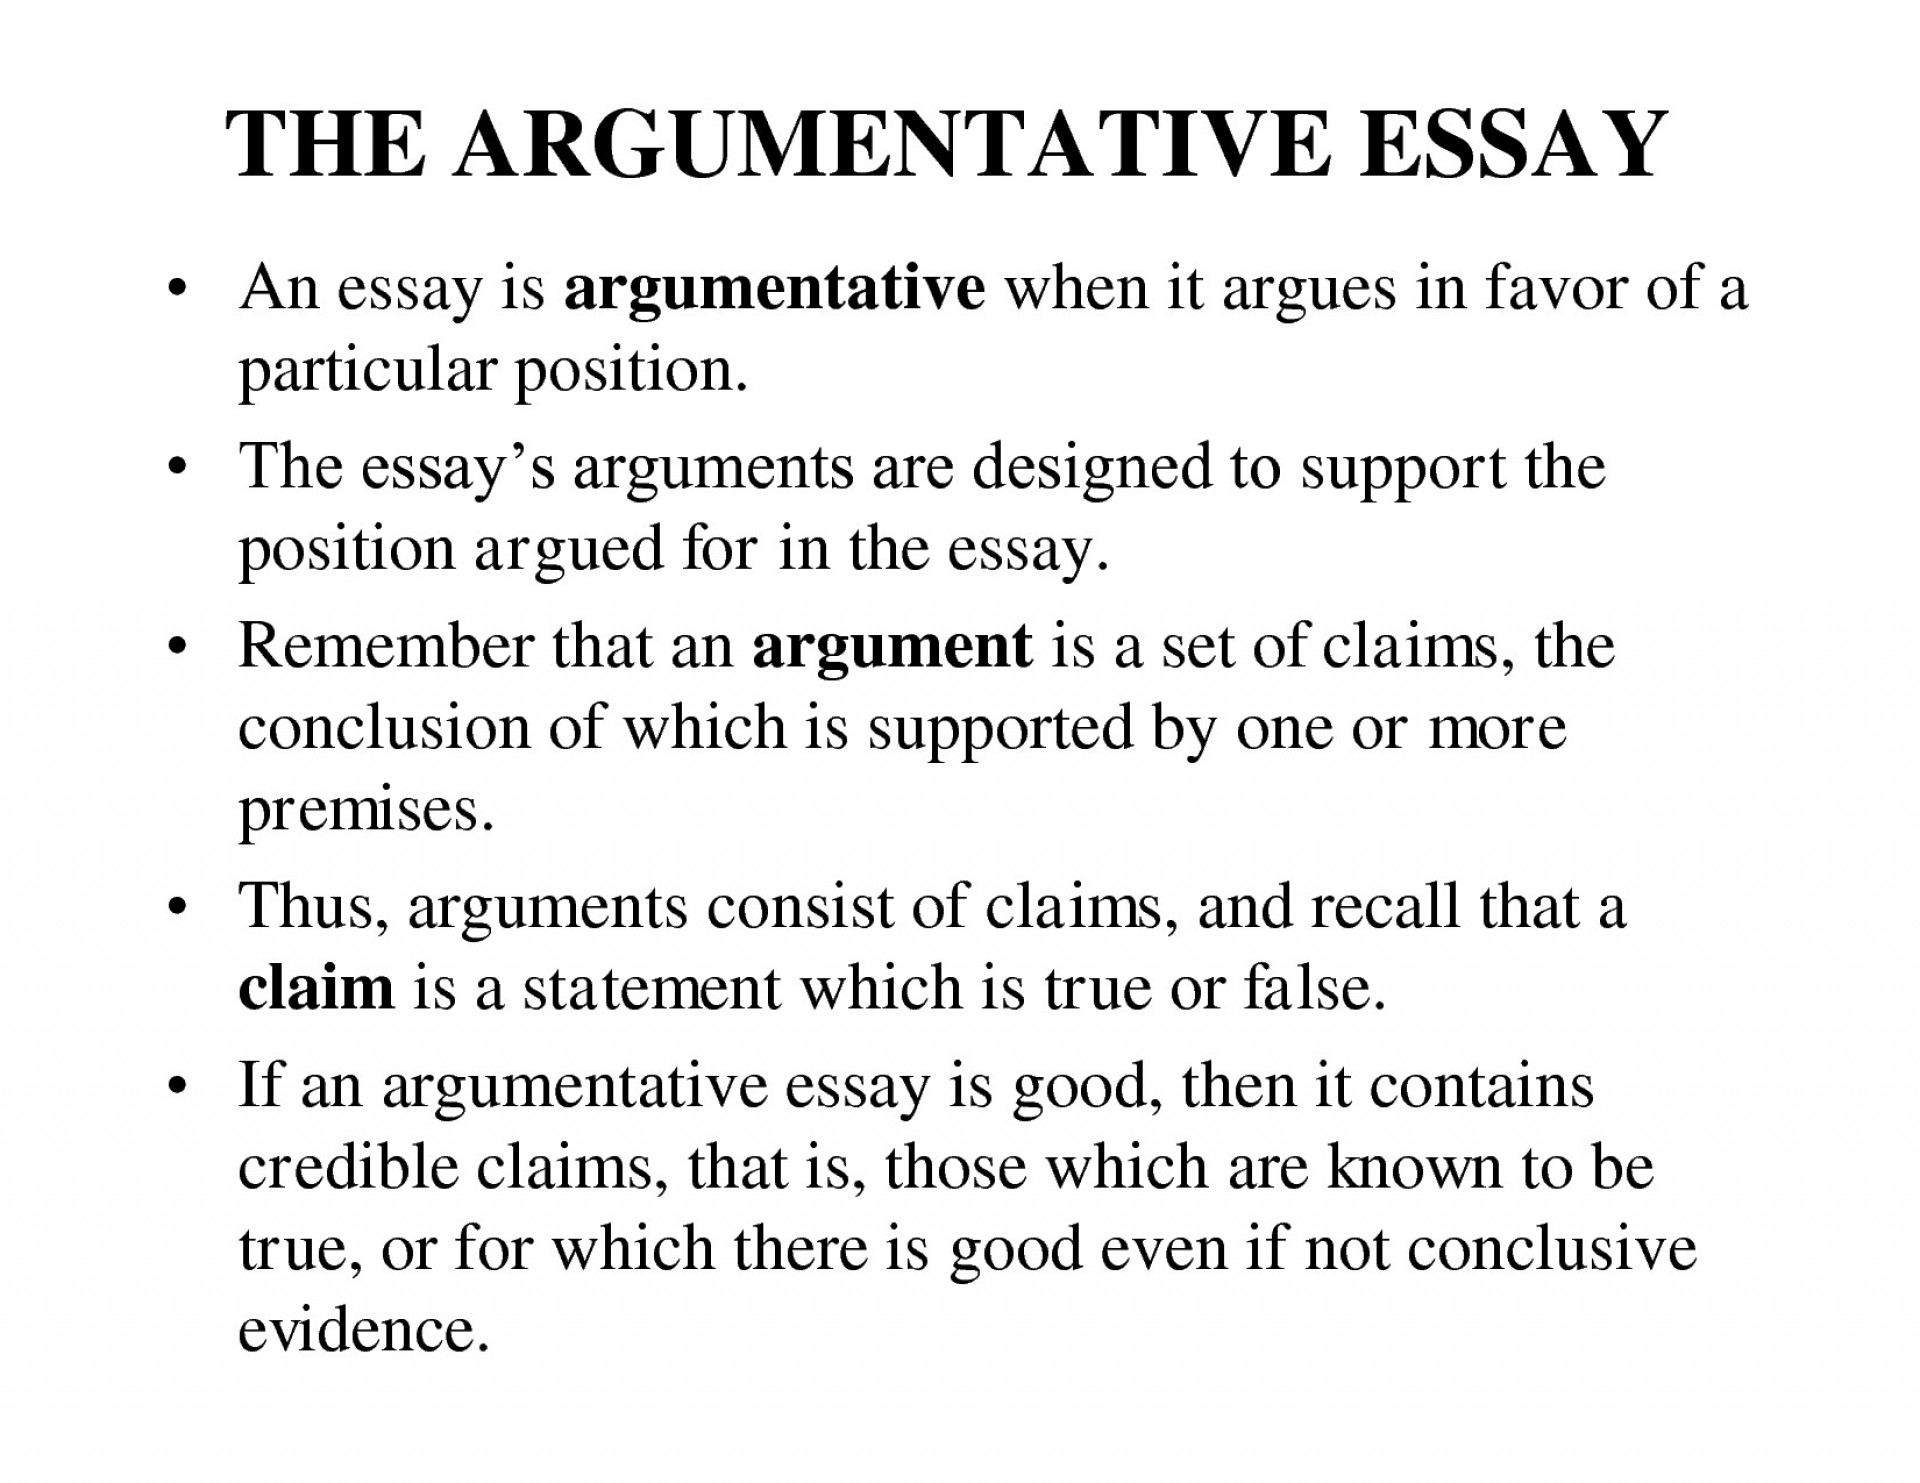 002 Ways To Write Conclusion For An Argumentative Essay How Conclude Top Teach Me A Good Paragraph Step By Ppt Middle School 1920